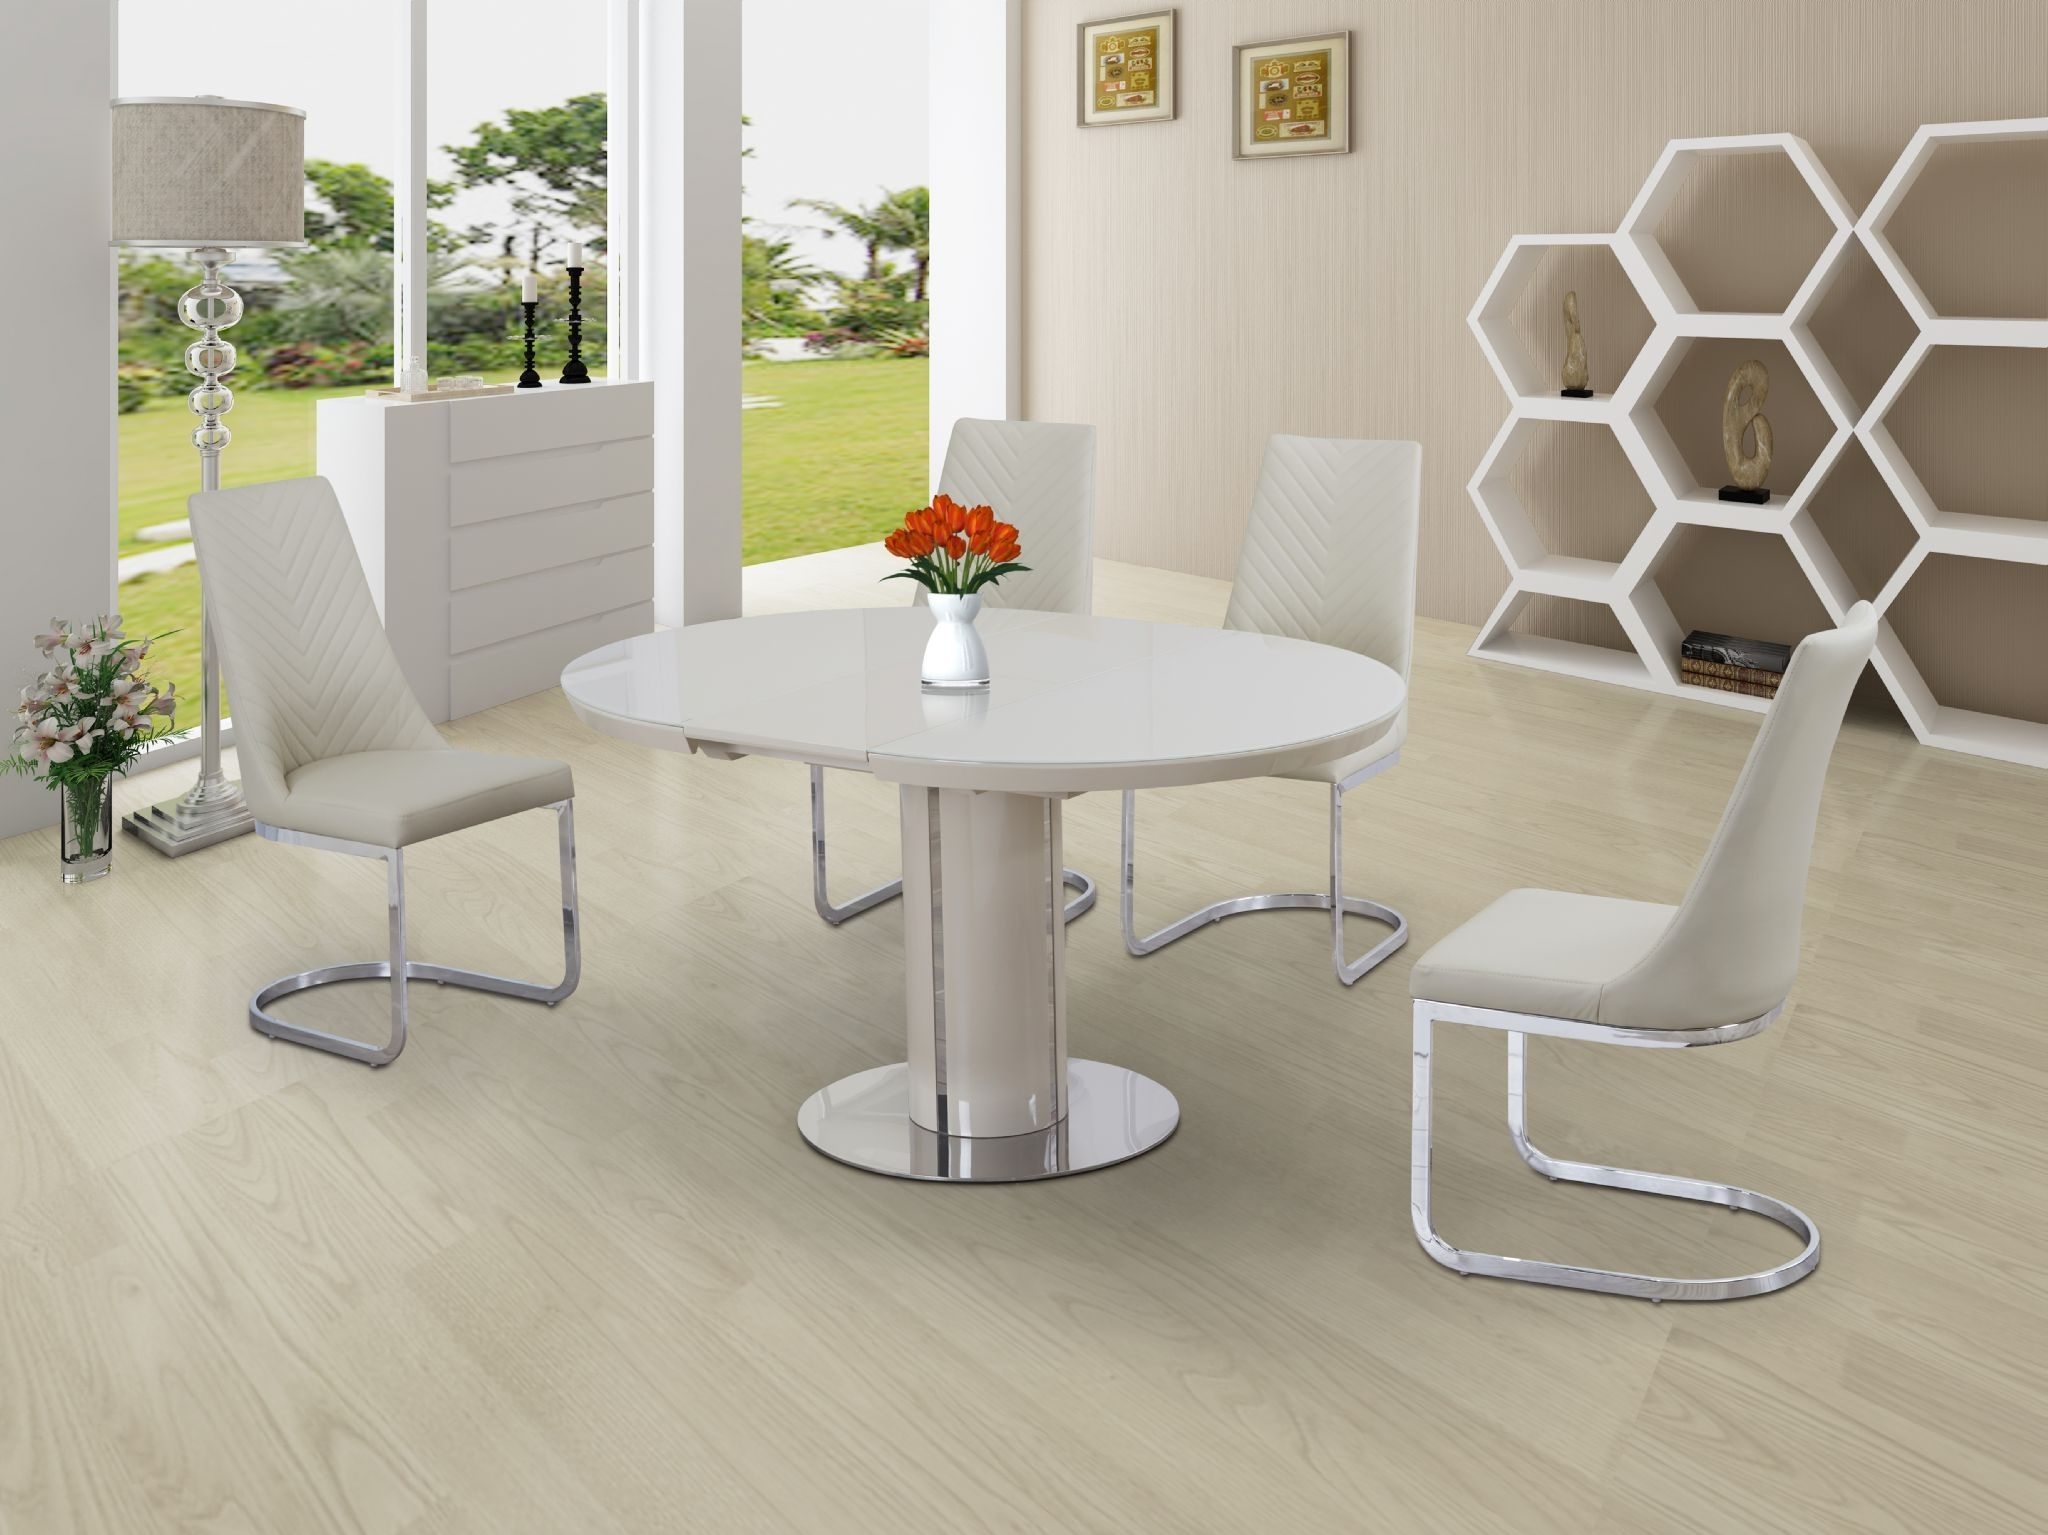 Famous Cream And Wood Dining Tables Pertaining To Buy Cream Small Round Extendable Dining Table Today (View 14 of 25)